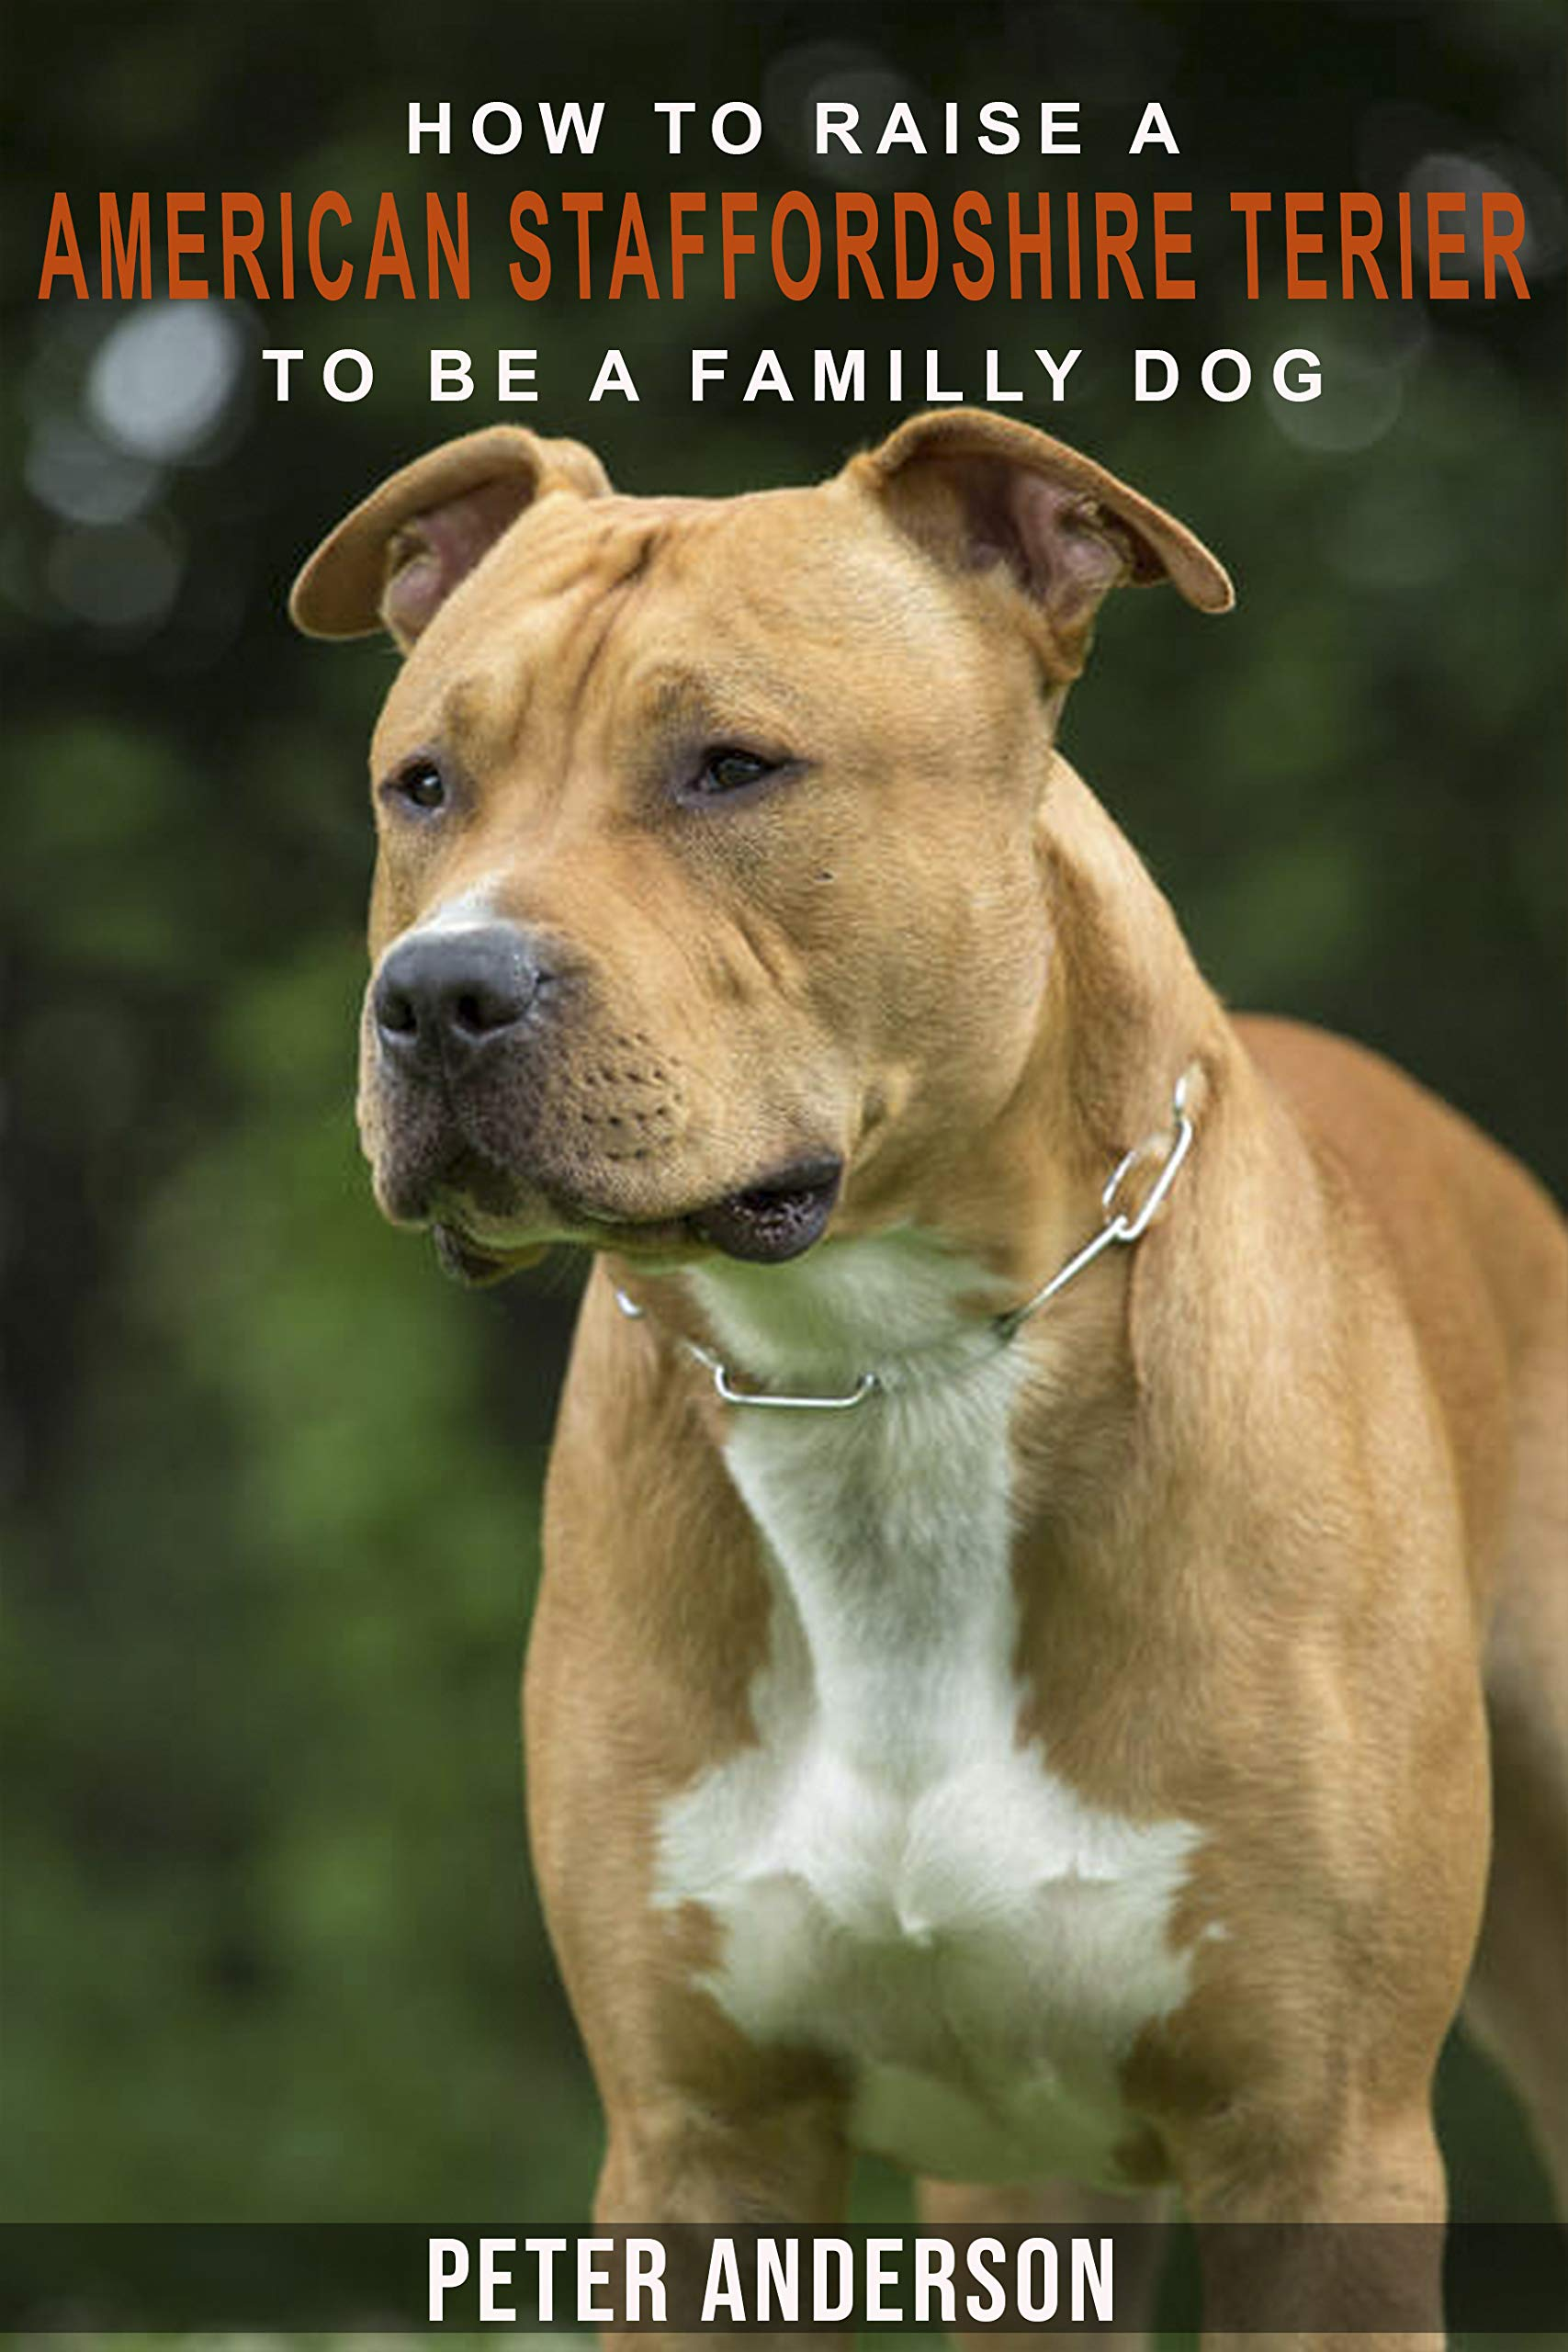 How to rasie a american staffordshire terier to be family dog: American Staffordshire Terrier Socializing, Obedience…